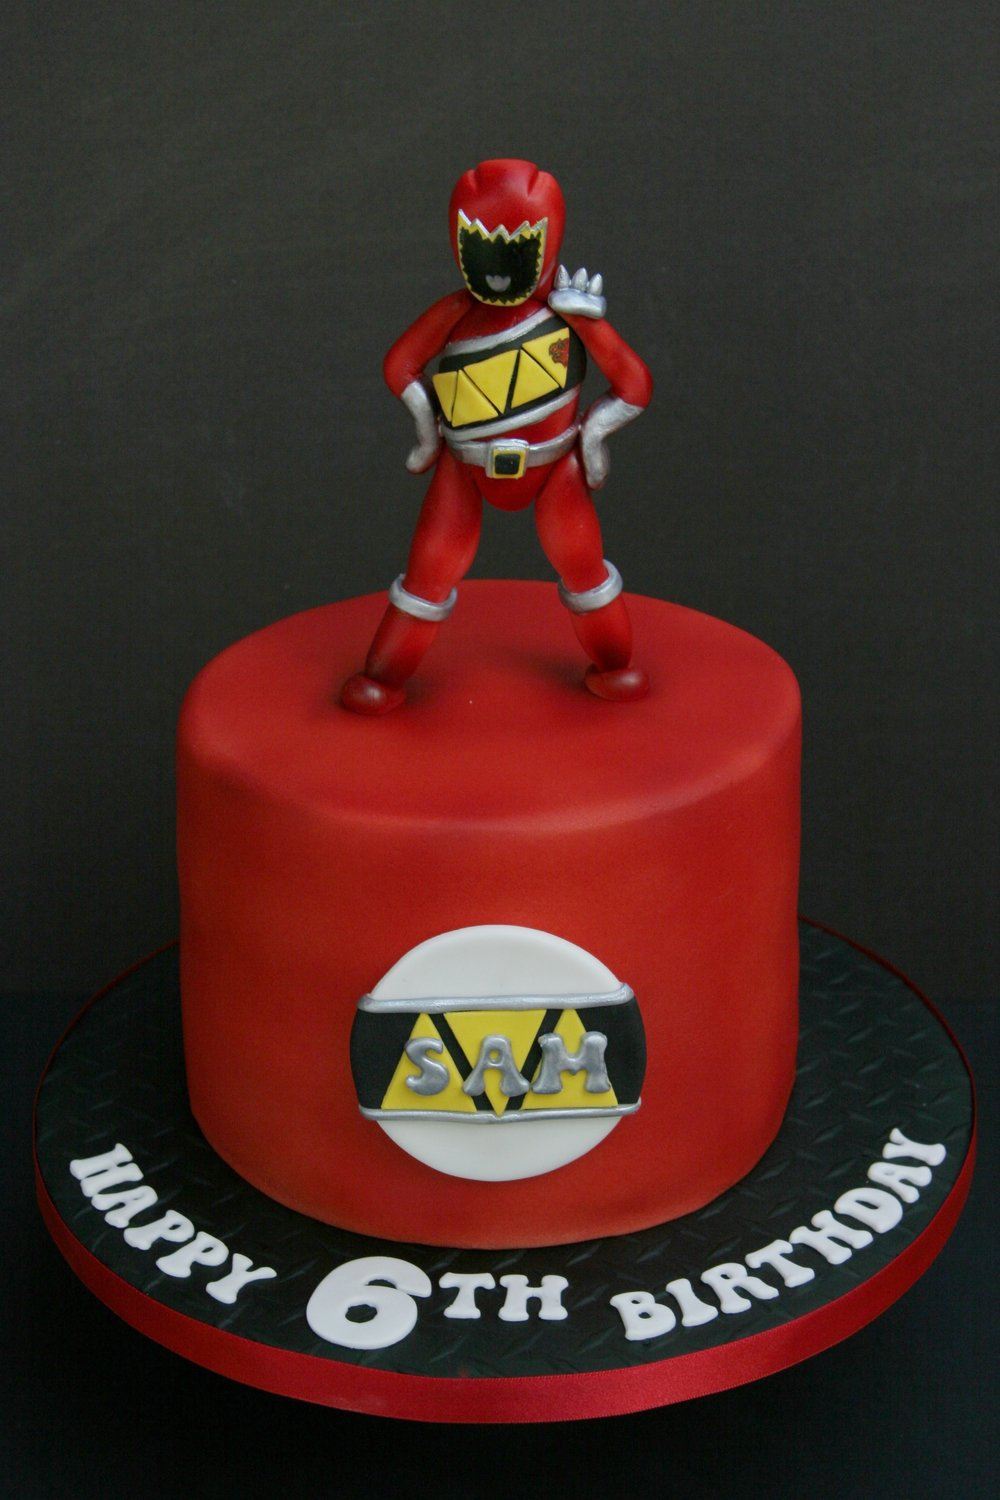 Power Rangers Cake - Sam.jpg